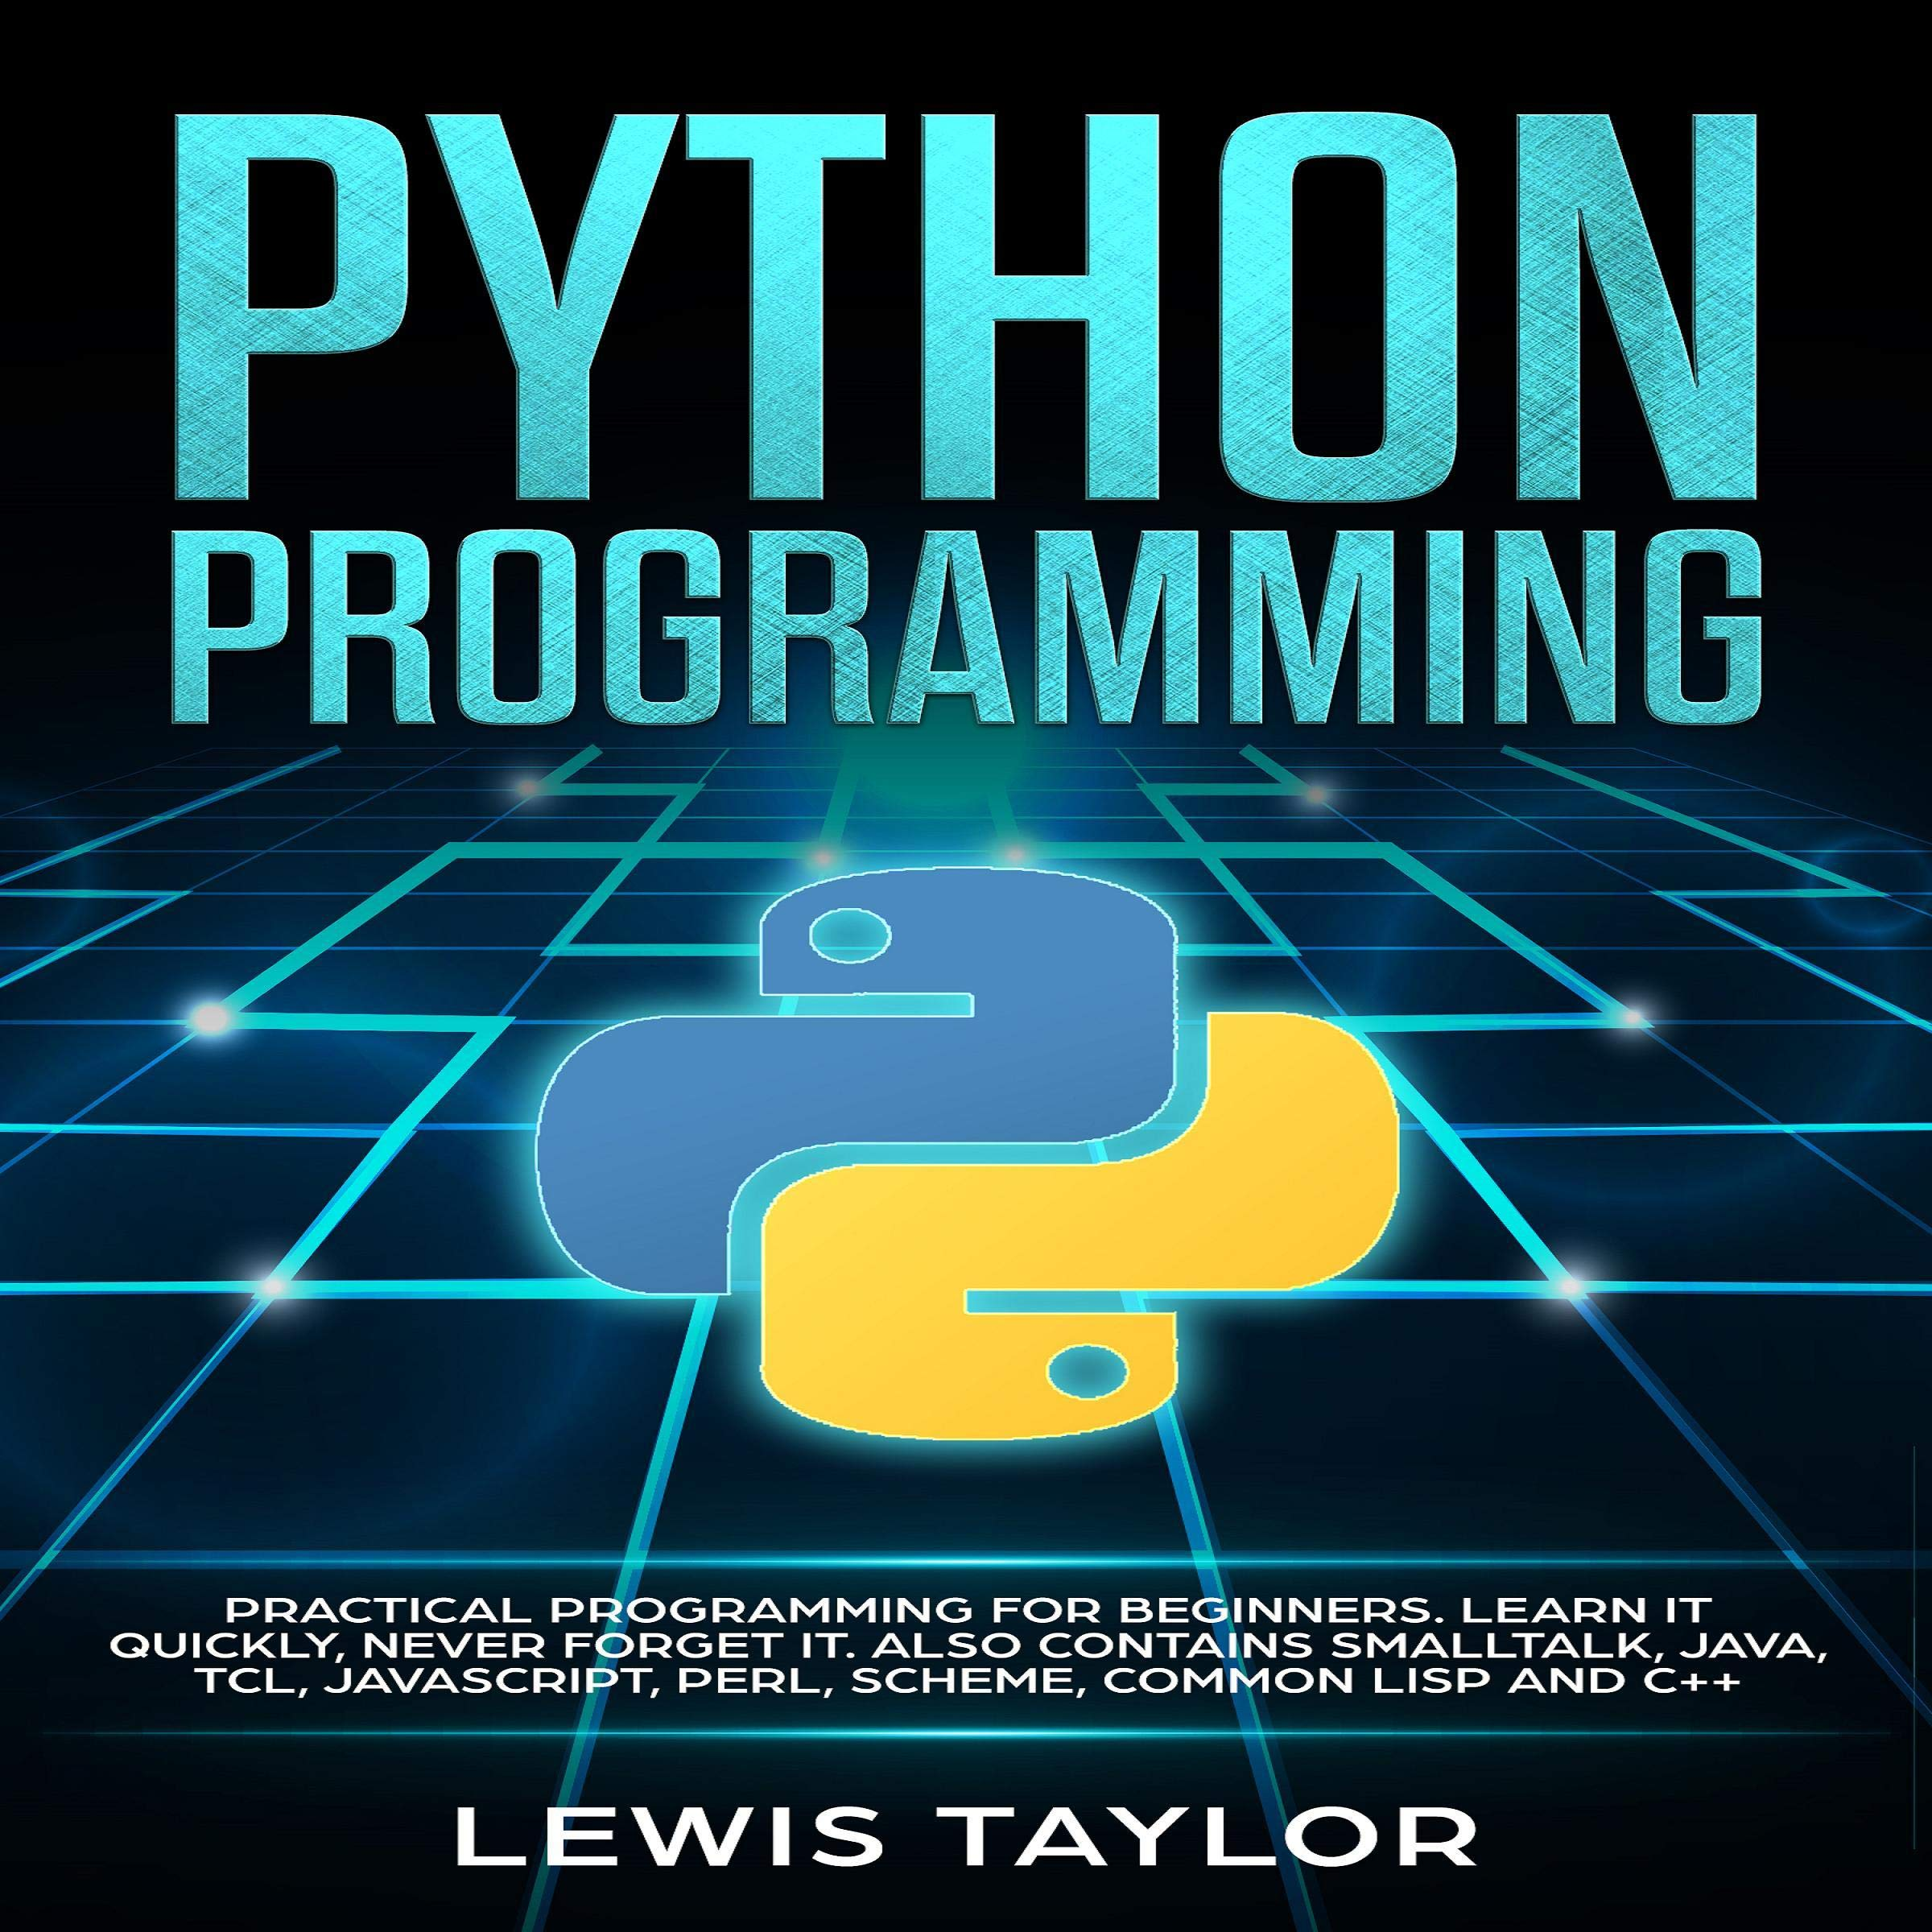 Python Programming: Practical Programming for Beginners. Learn It Quickly, Never Forget It. Also Contains Smalltalk, Java, TCL, JavaScript, Perl, Scheme, Common Lisp and C++